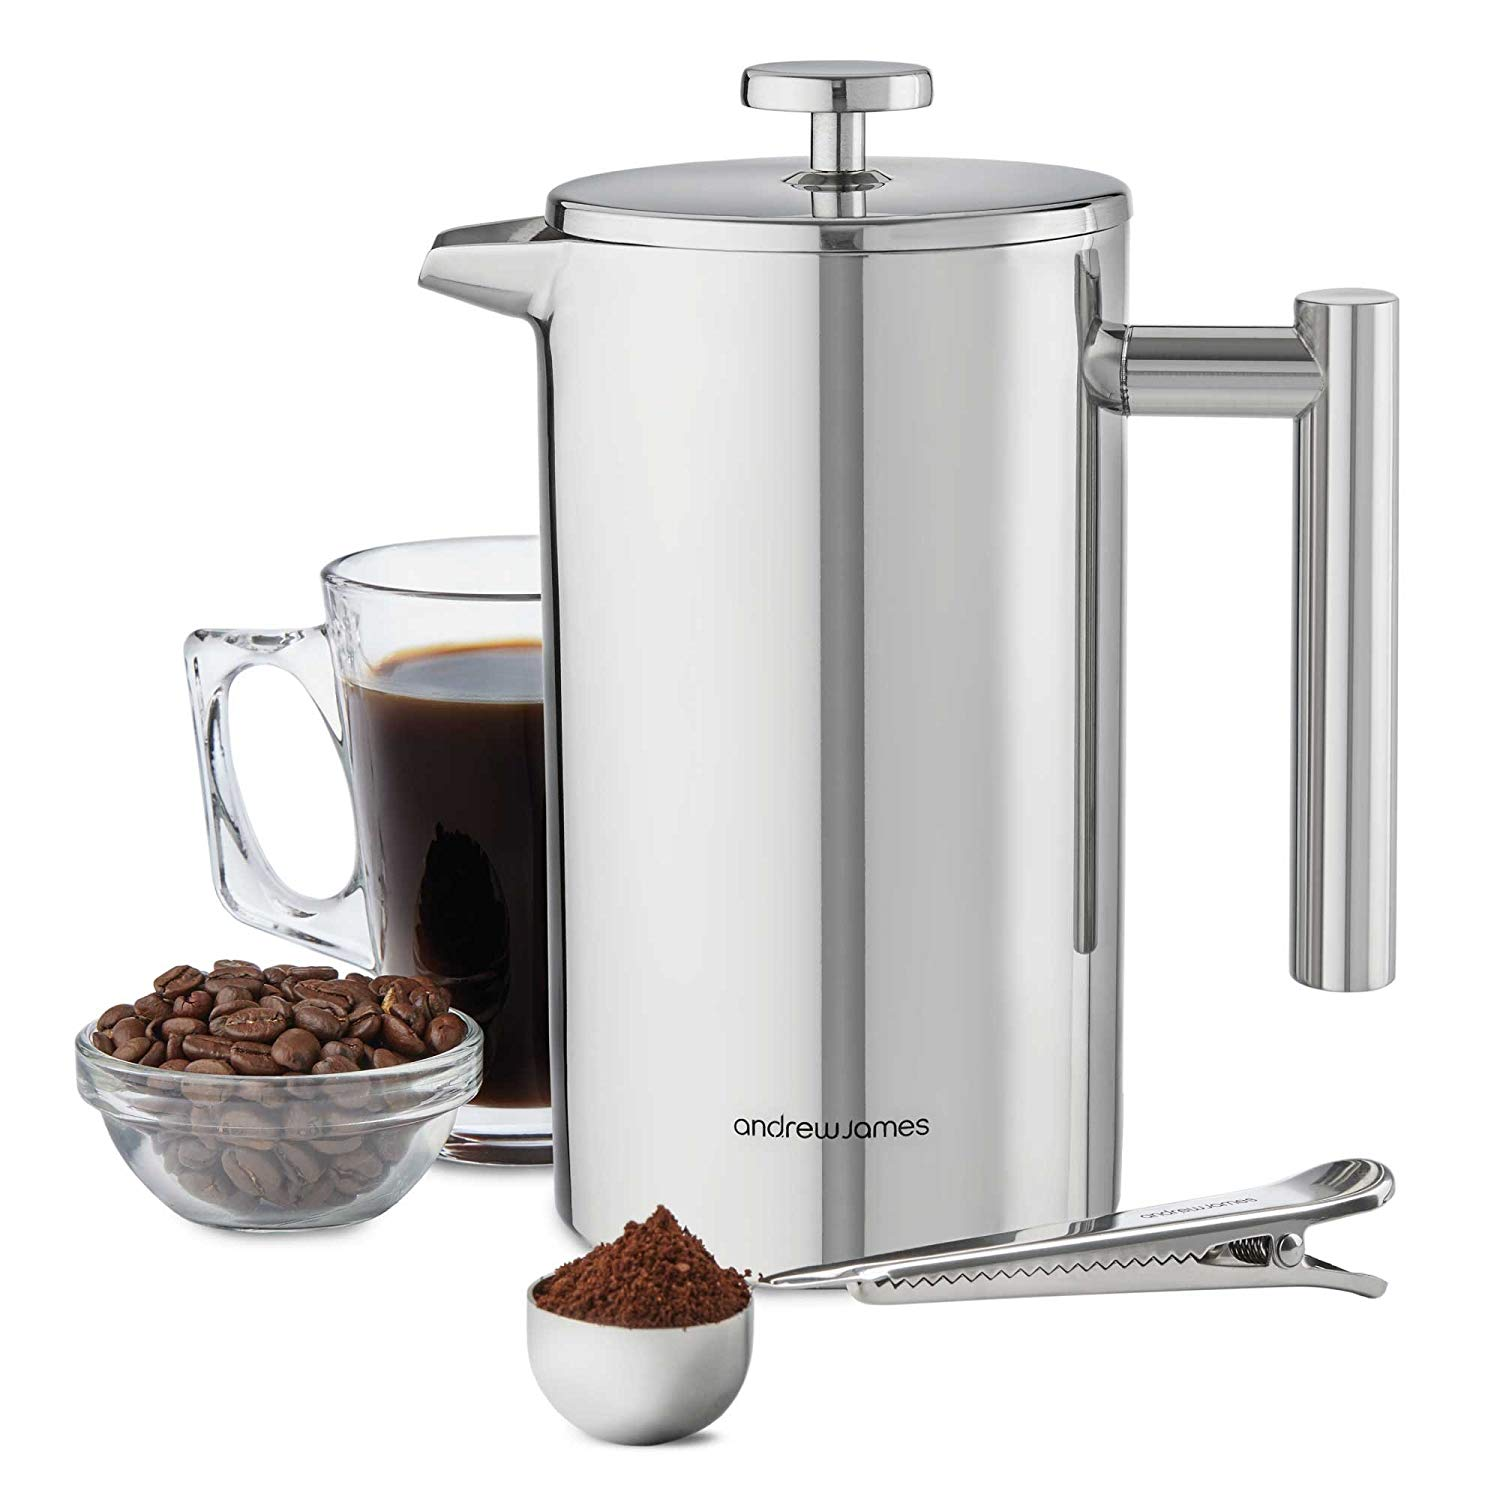 Andrew James Stainless Steel Coffee Press